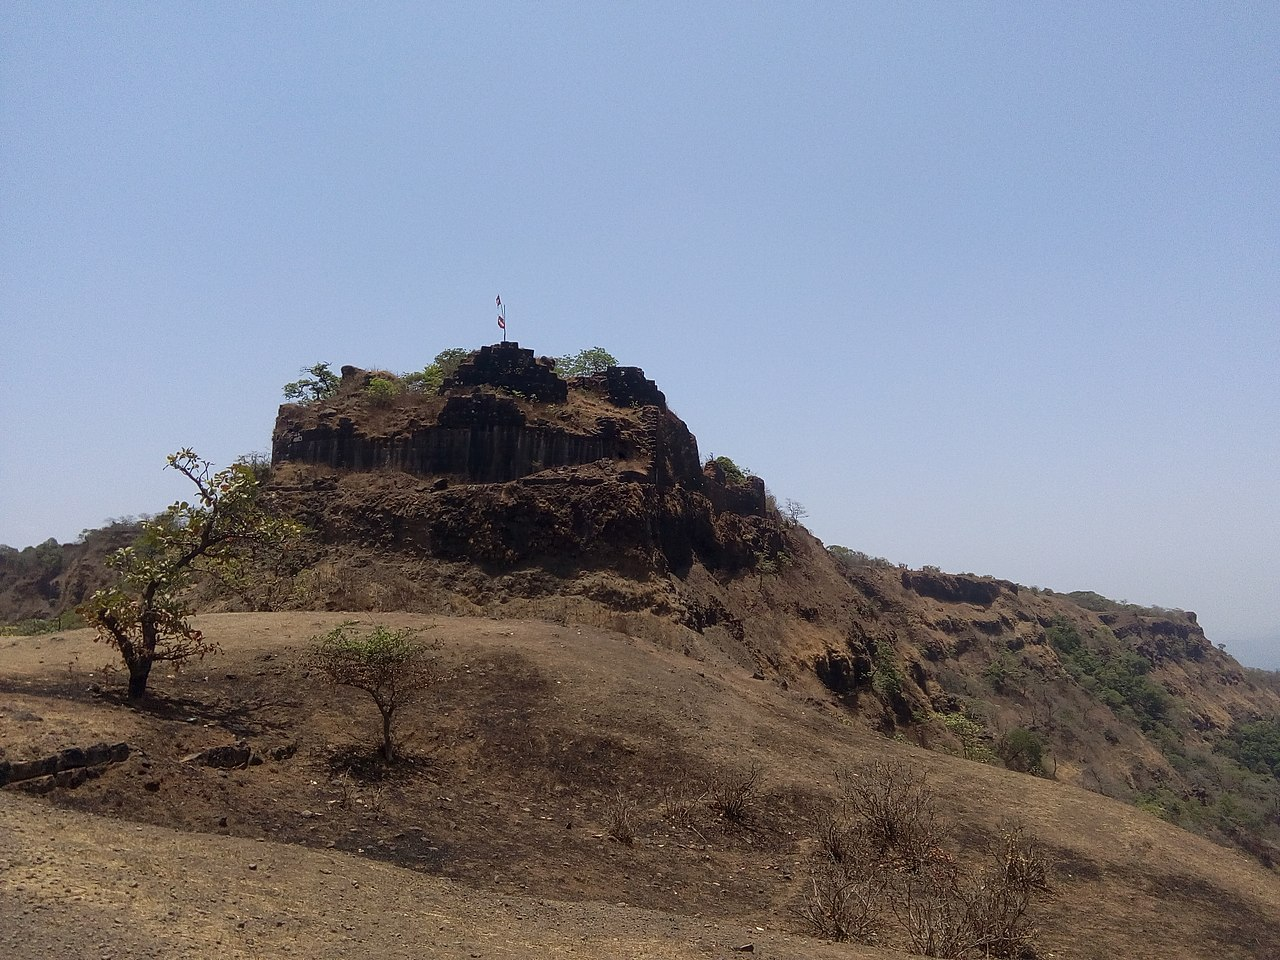 Rangana Fort in the Sahyadri hills of Maharashtra